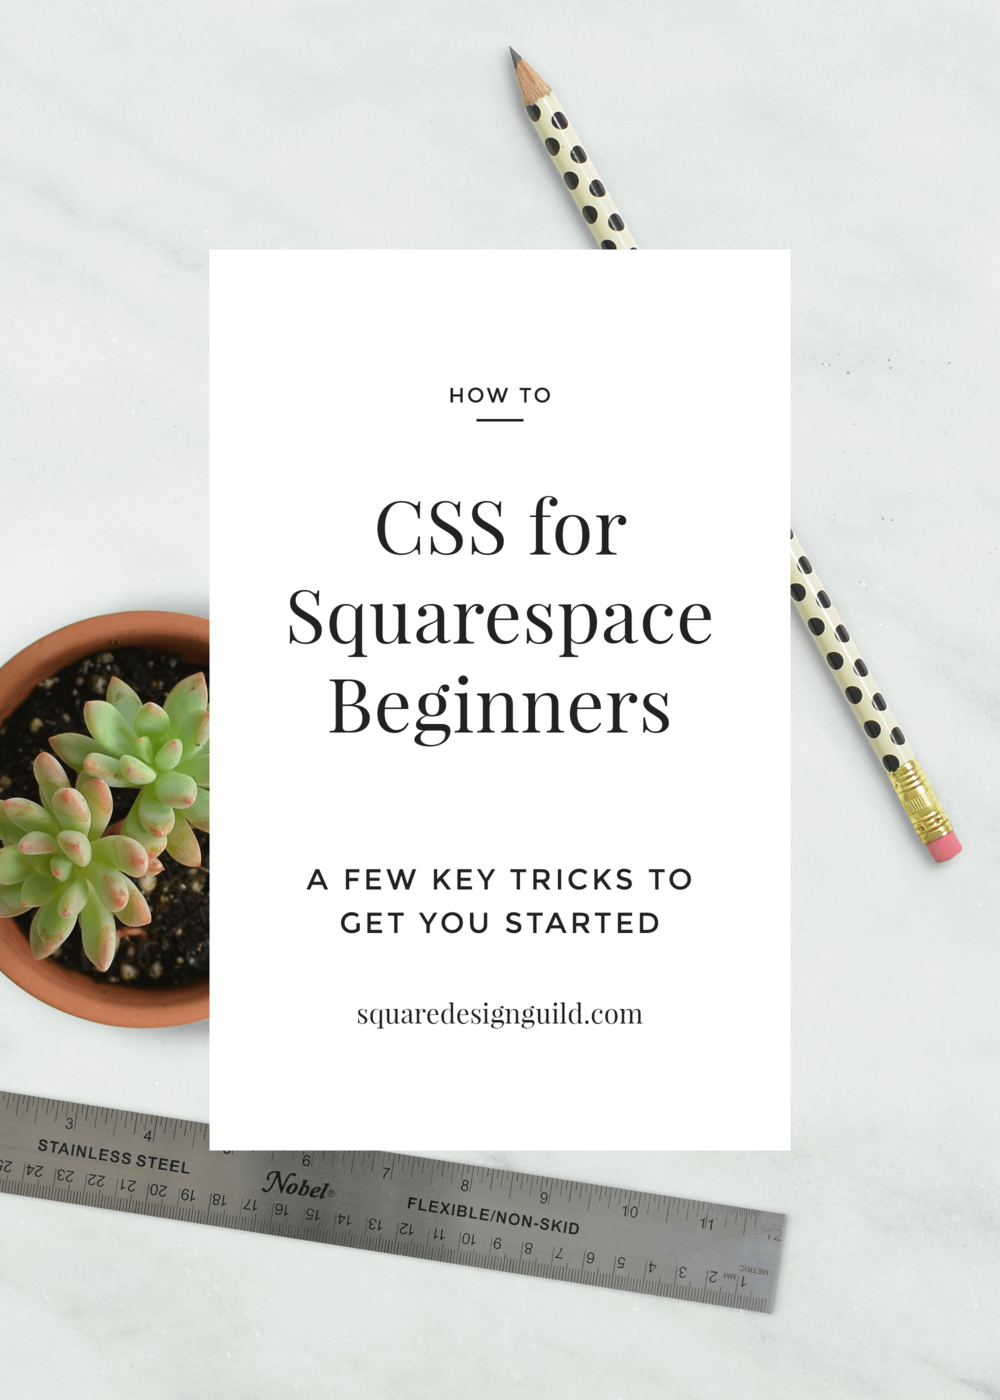 CSS+for+Squarespace+Beginners+|+A+Few+Tips+and+Tricks+to+Get+You+Started (1).png